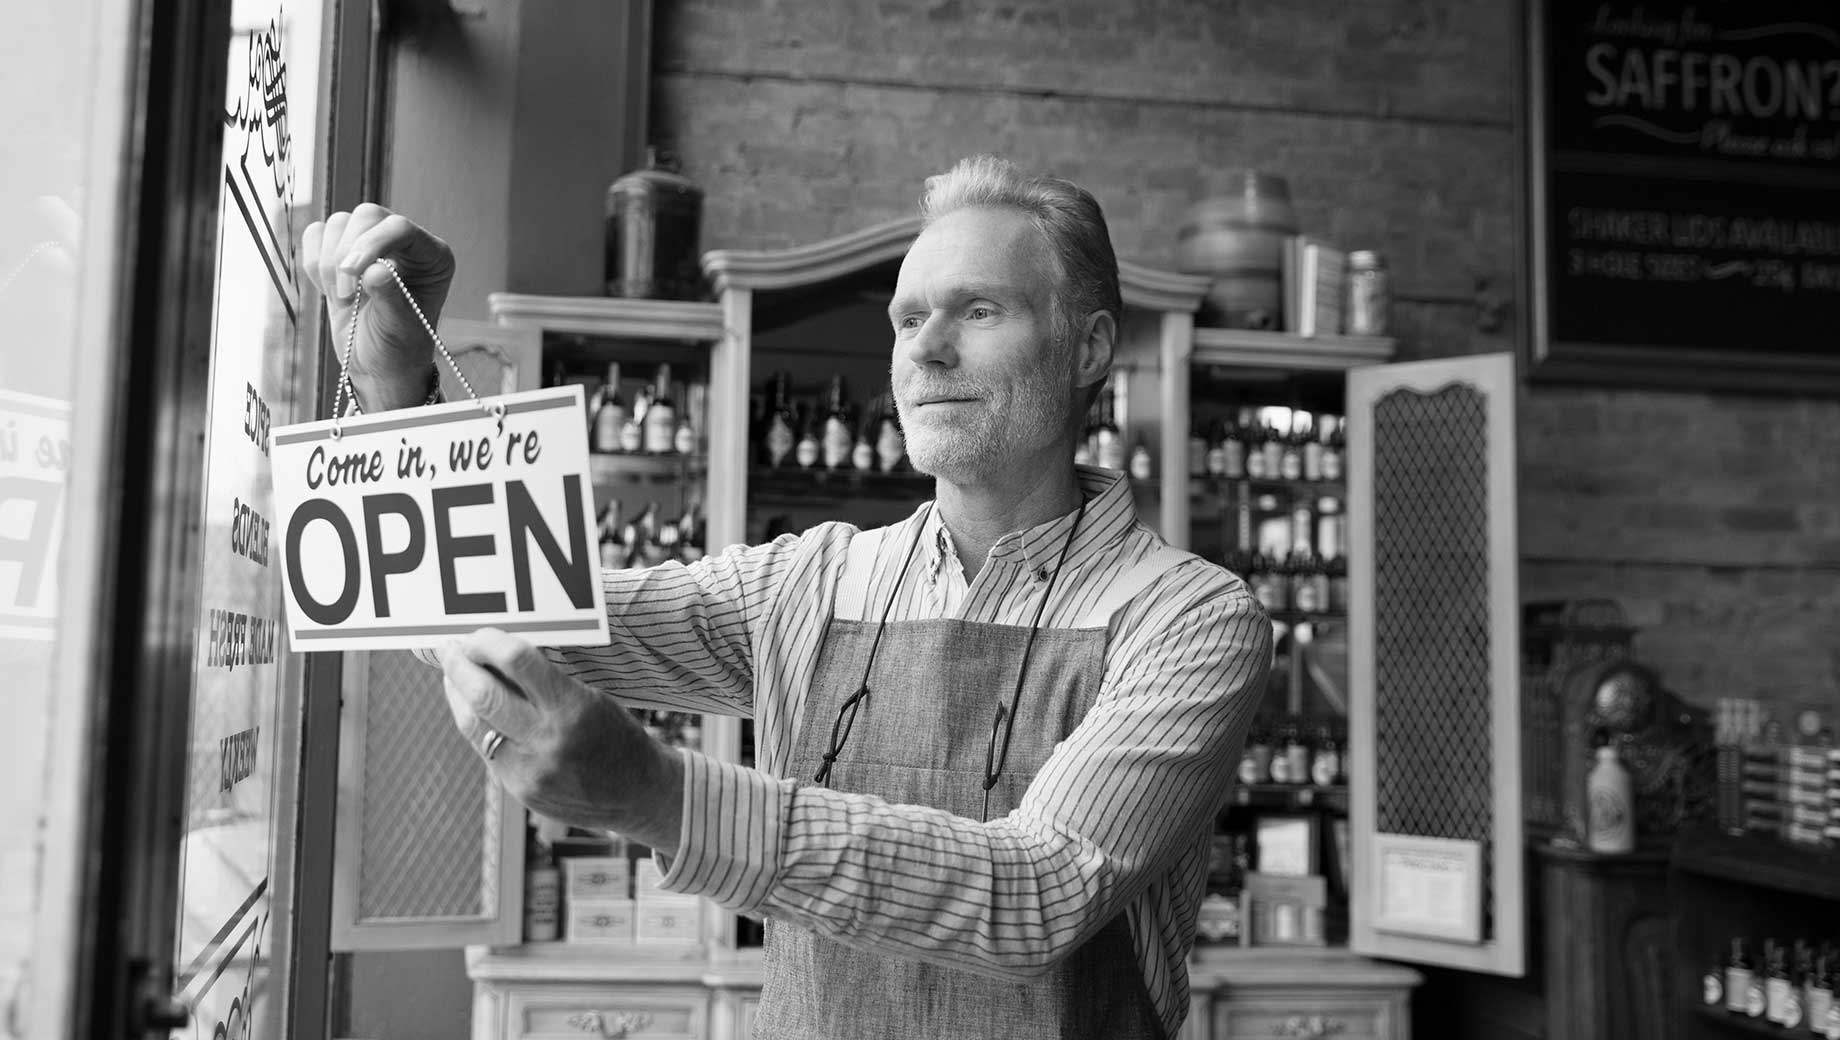 Small-Business Owner Optimism Strong Amid Economic Concerns